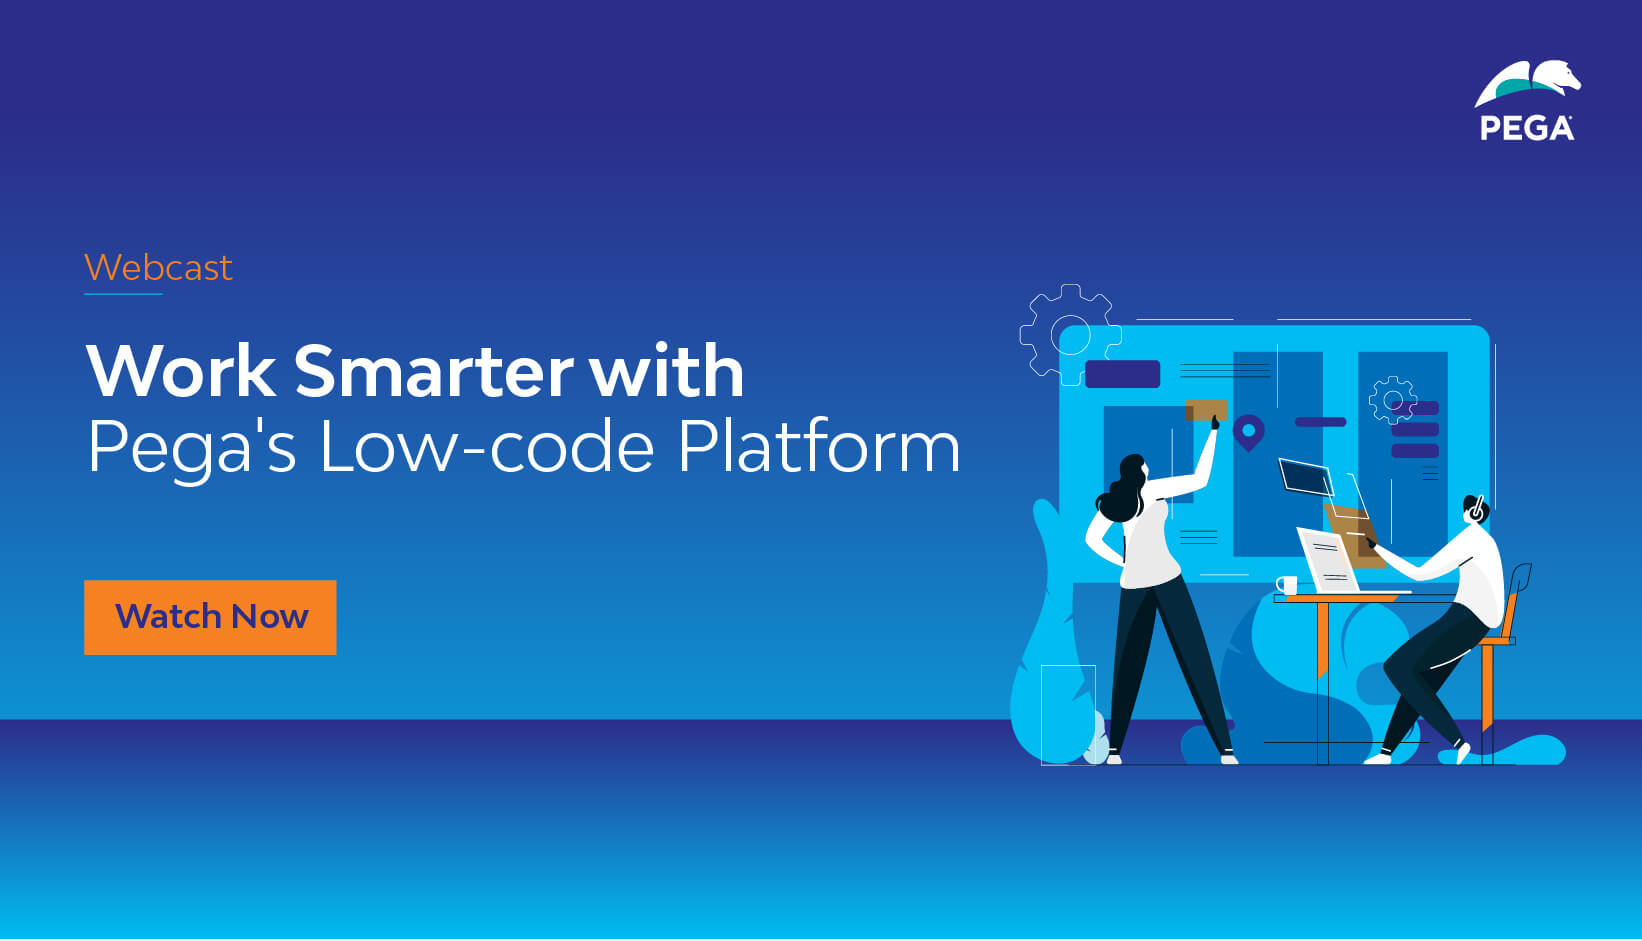 Work Smarter with Pega's Low-code Platform Webcast